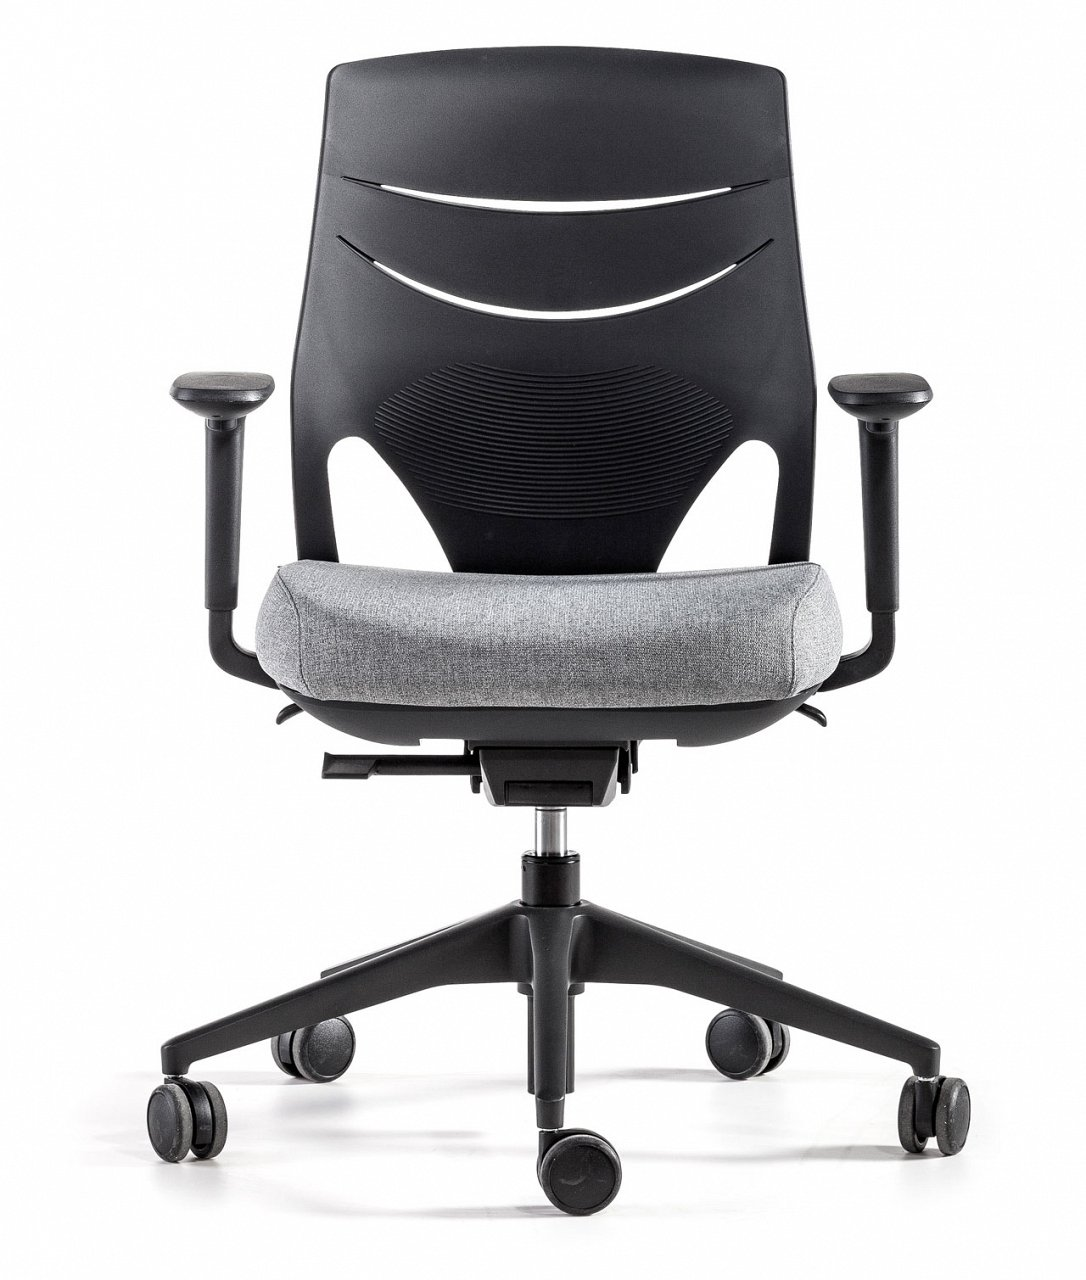 Efit Chair office from Actiu